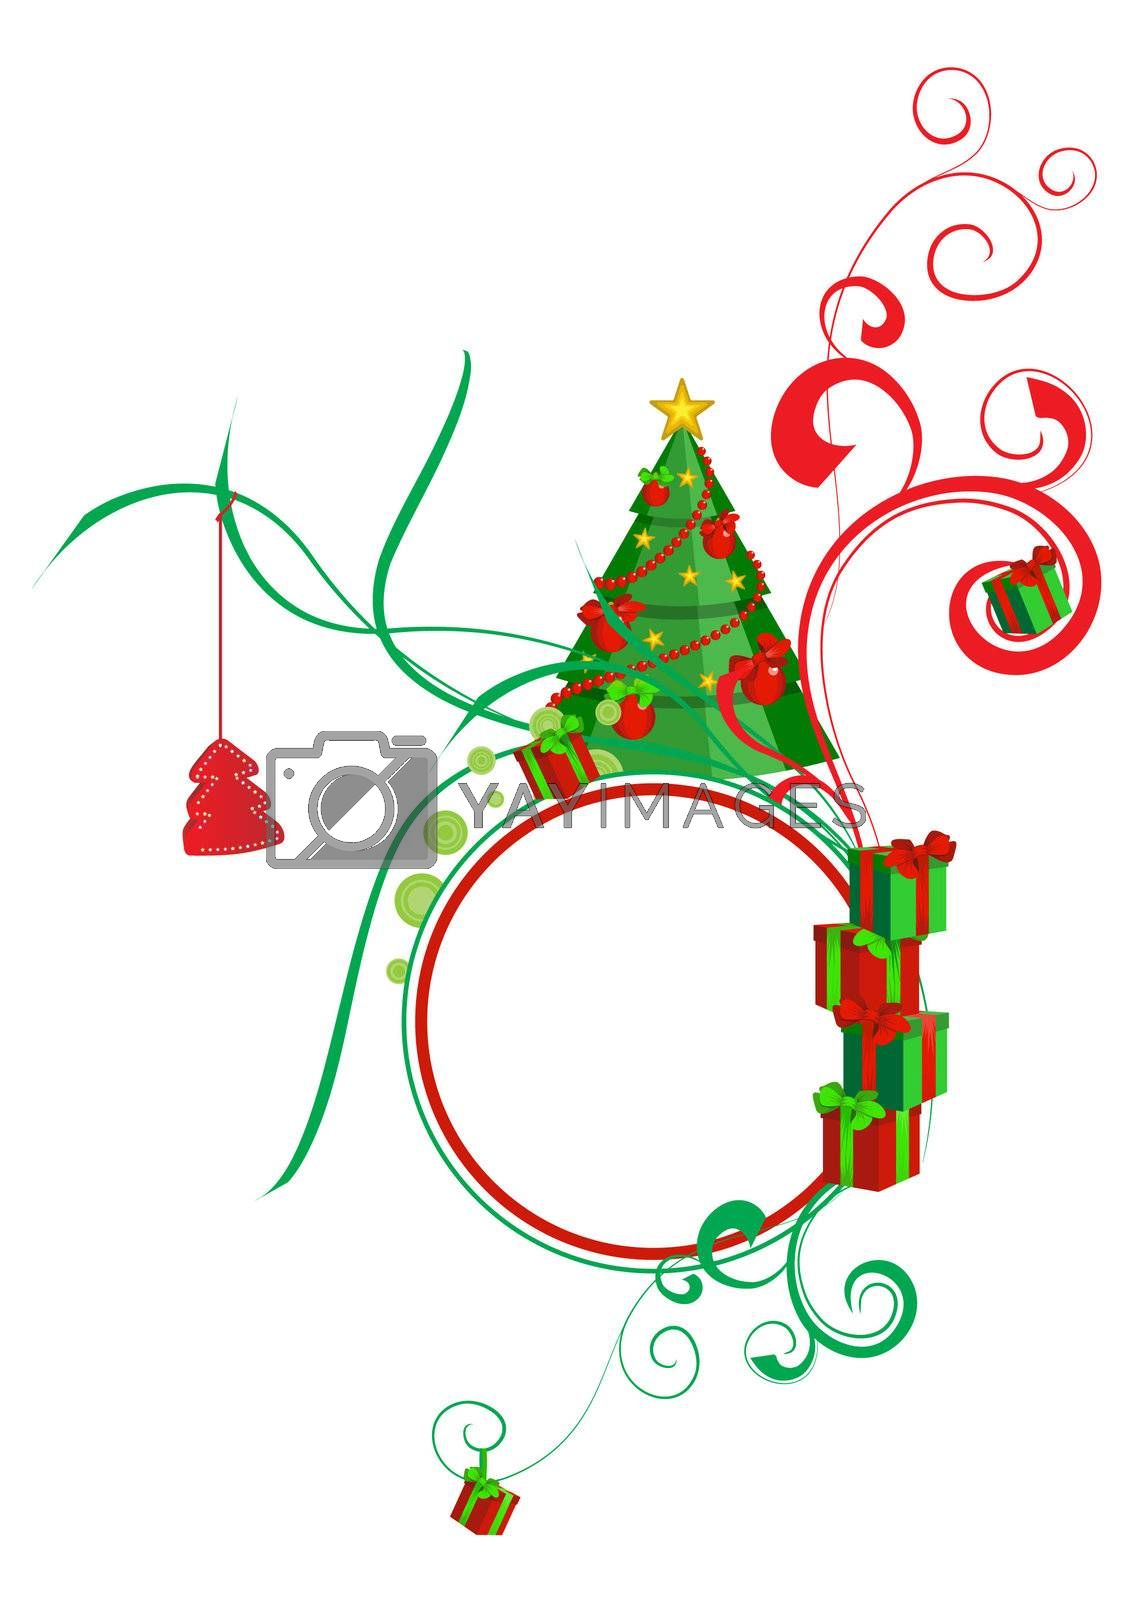 Colorful illustration with decorated green Christmas tree